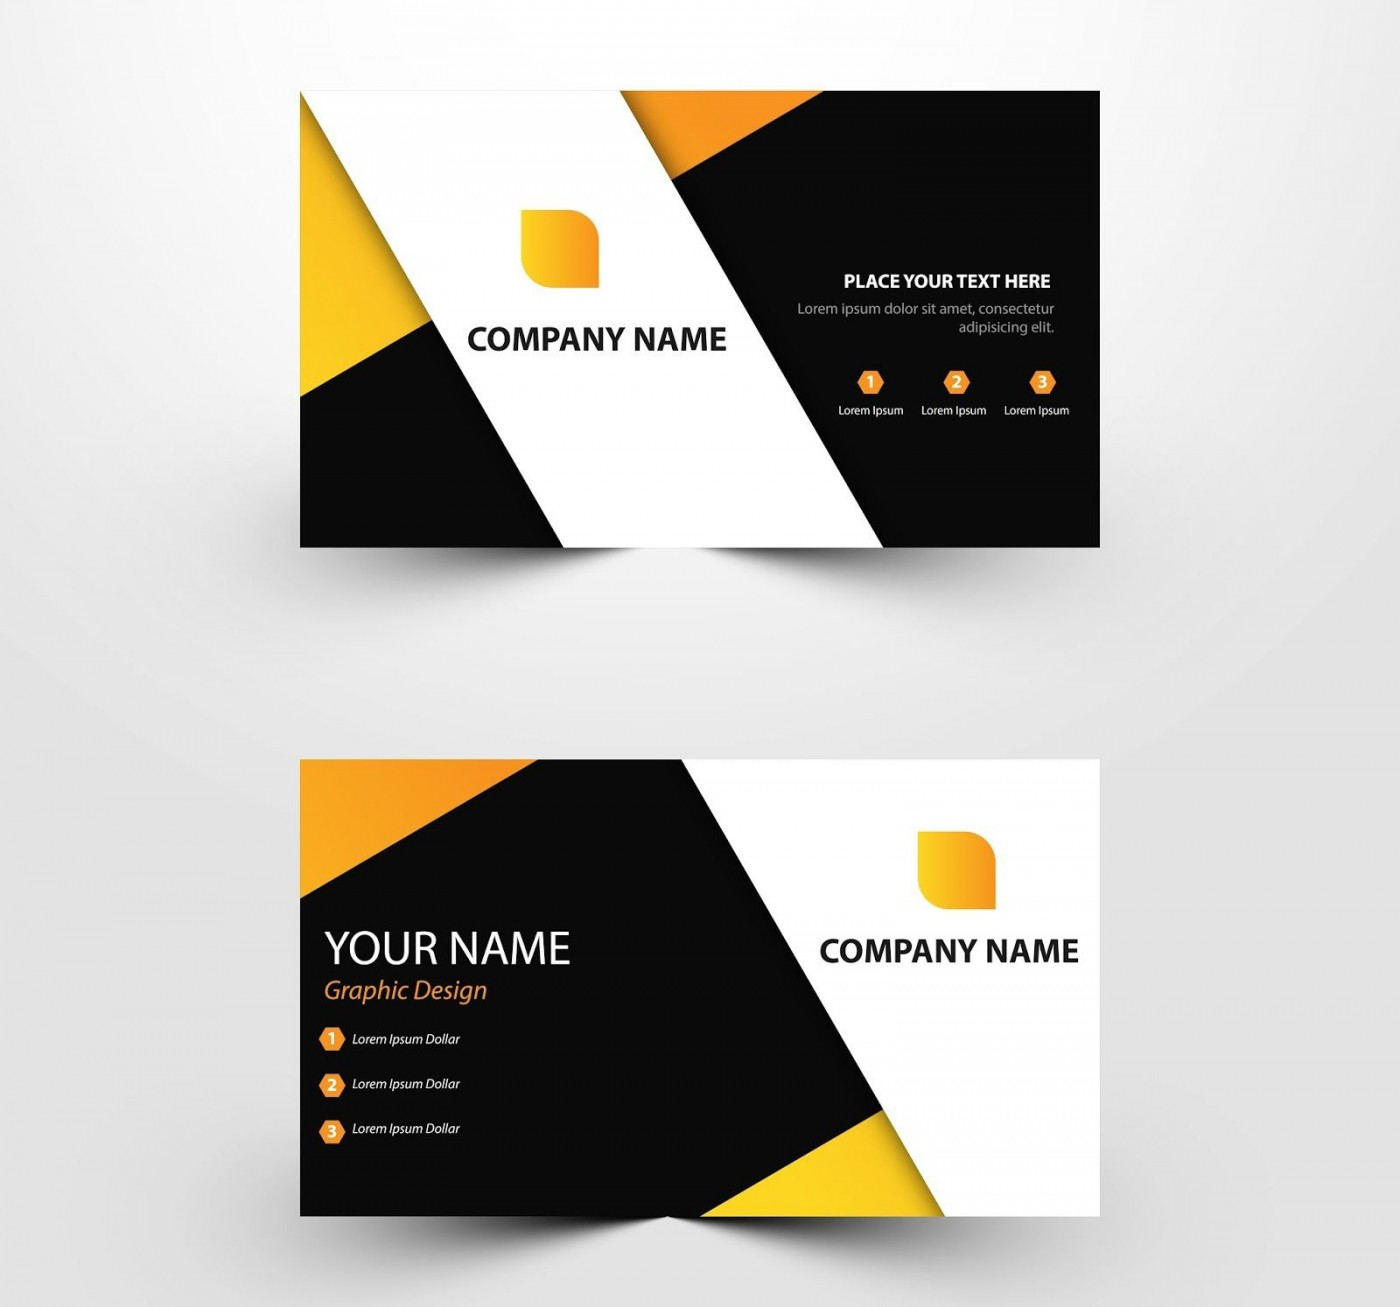 009 Unique Free Photoshop Busines Card Template Download Highest Clarity  Adobe Psd Visiting Design1400